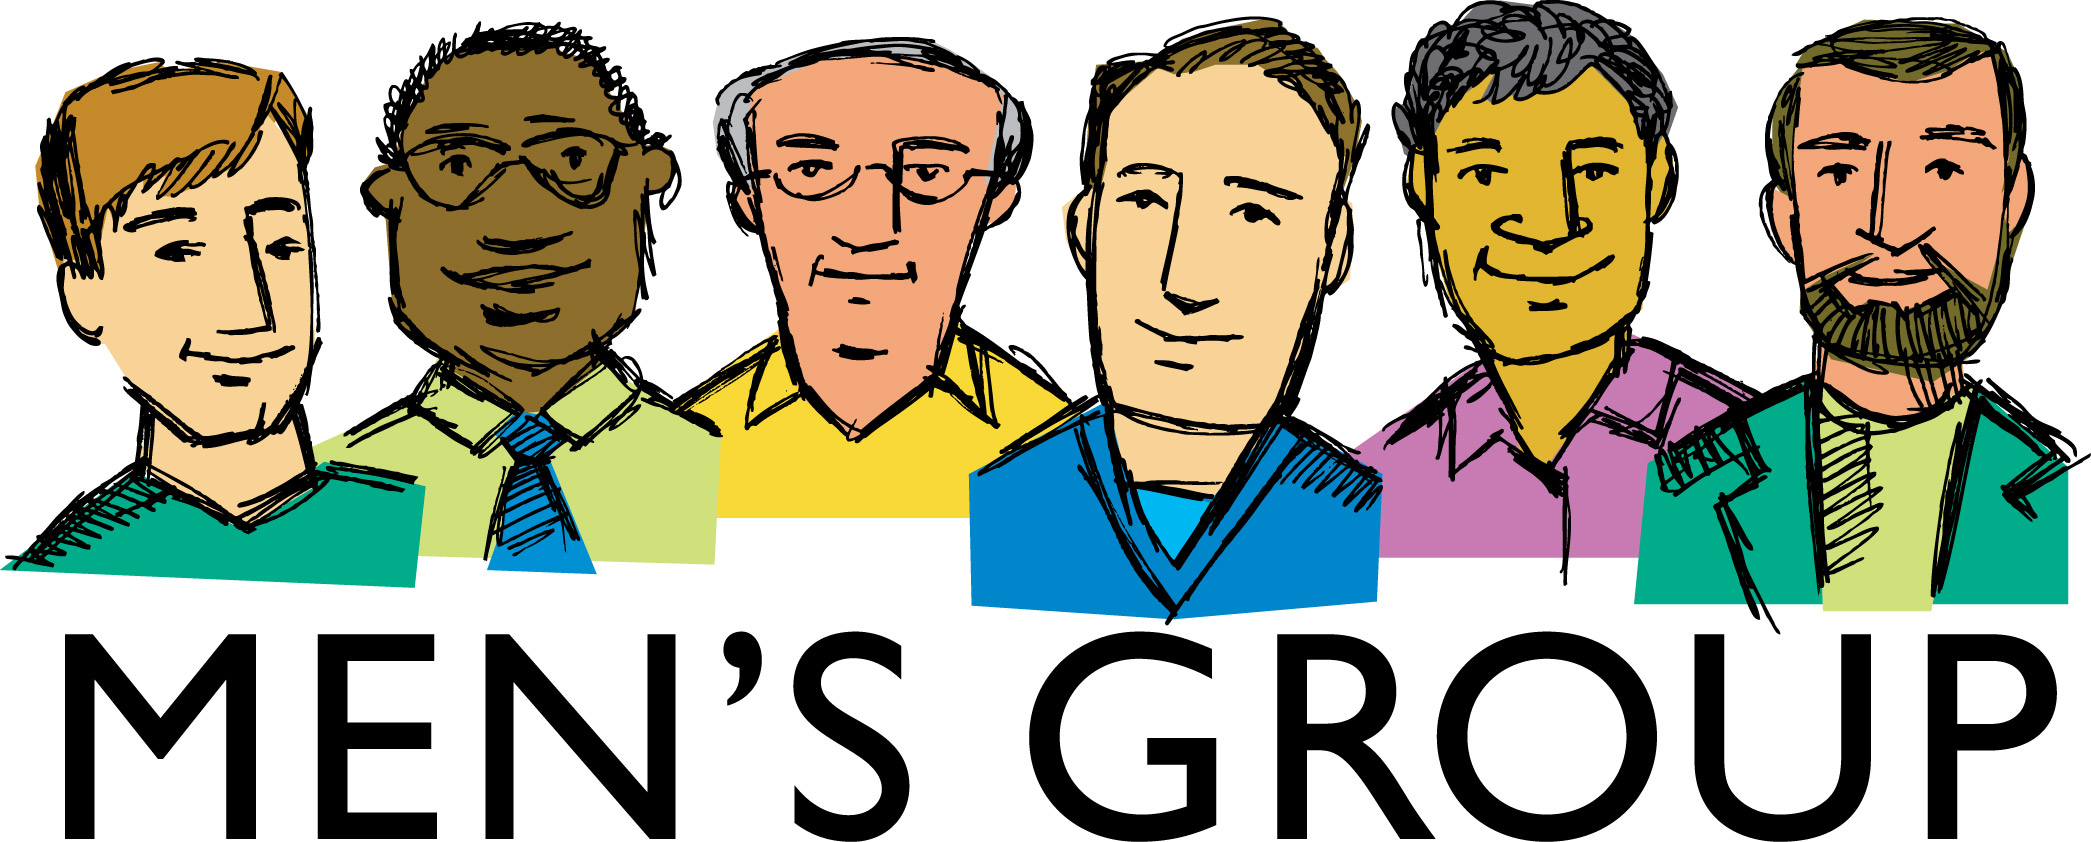 Meeting clipart small group Unity Men's Church Group Small